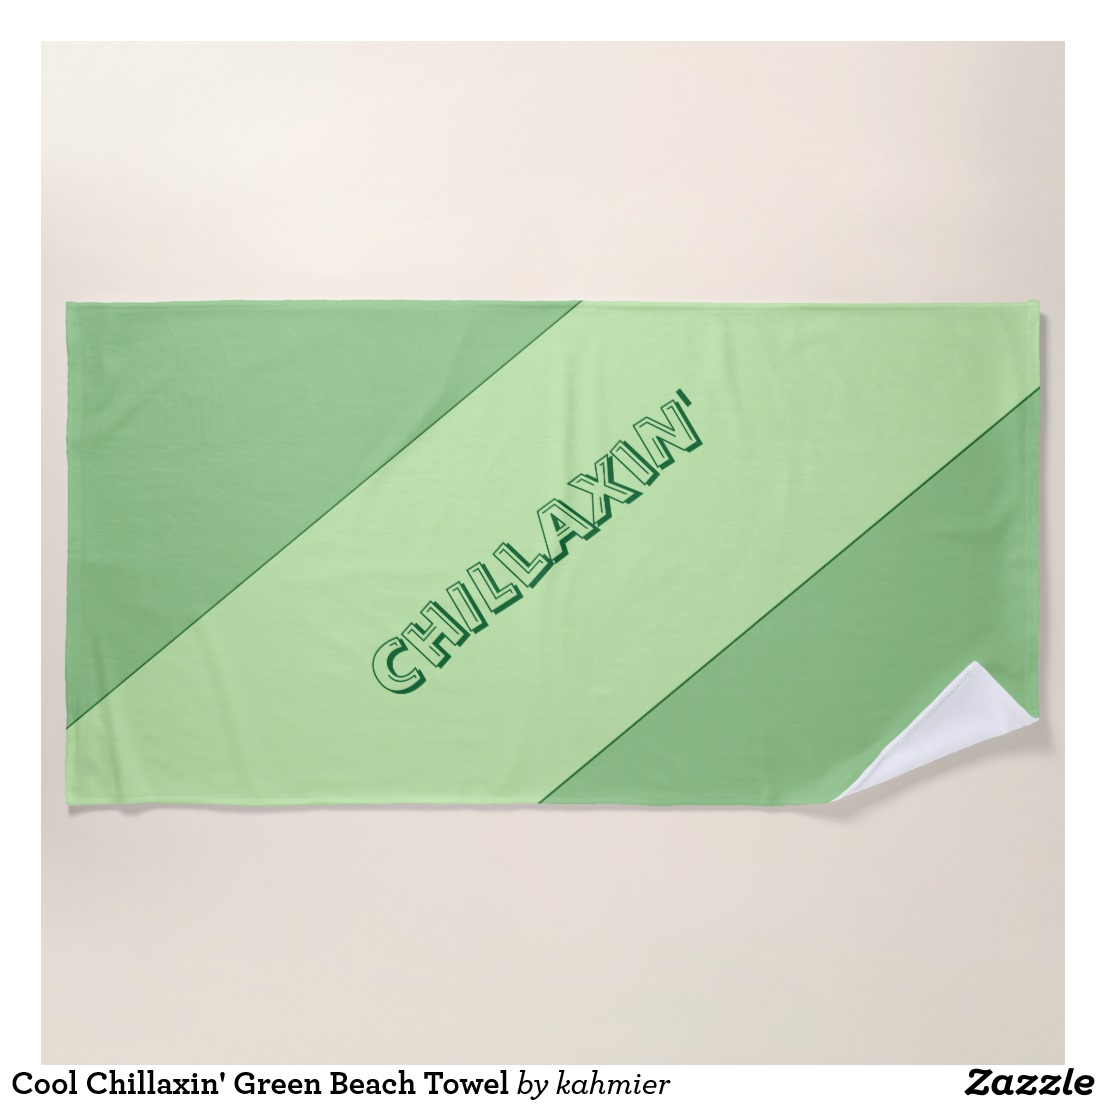 Cool Chillaxin' Green Beach Towel